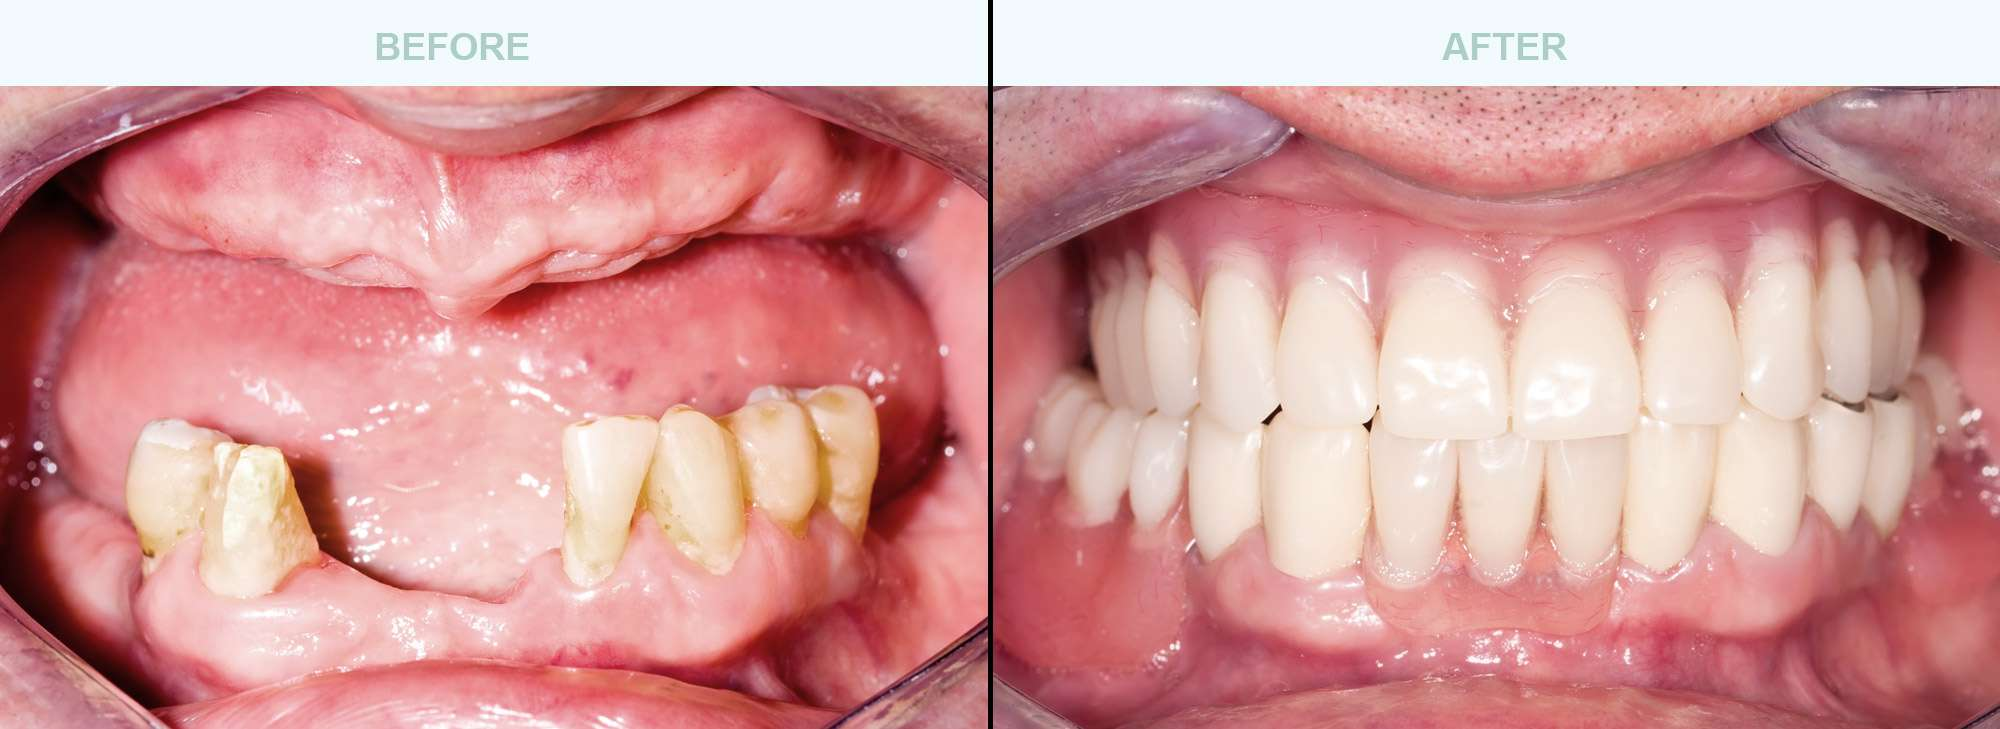 Dental-Implants-before-after